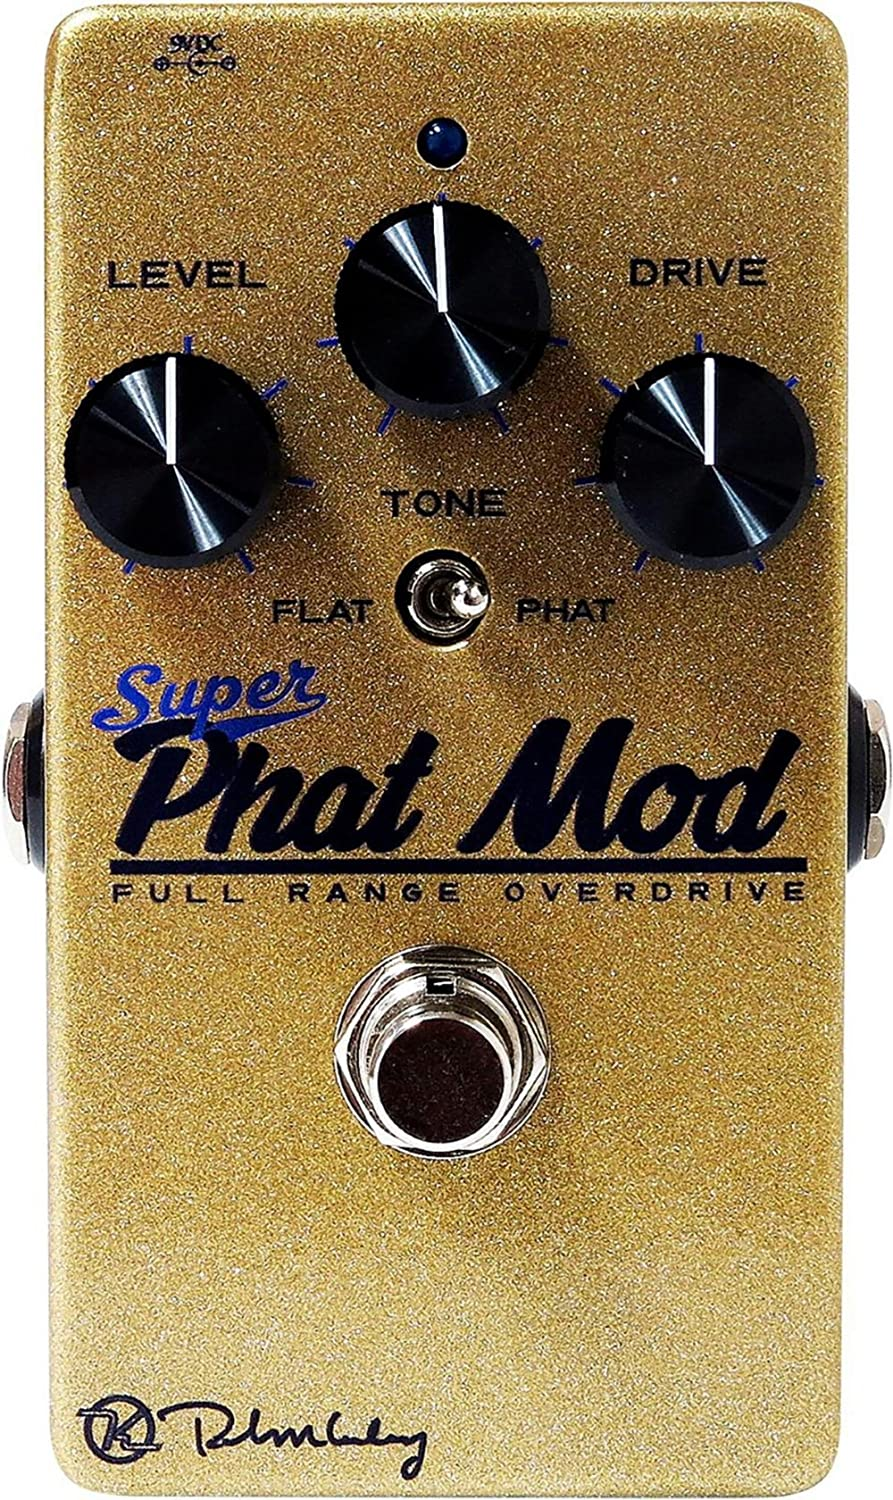 Keeley Super Phat Mod Dynamic Overdrive Effects Pedal